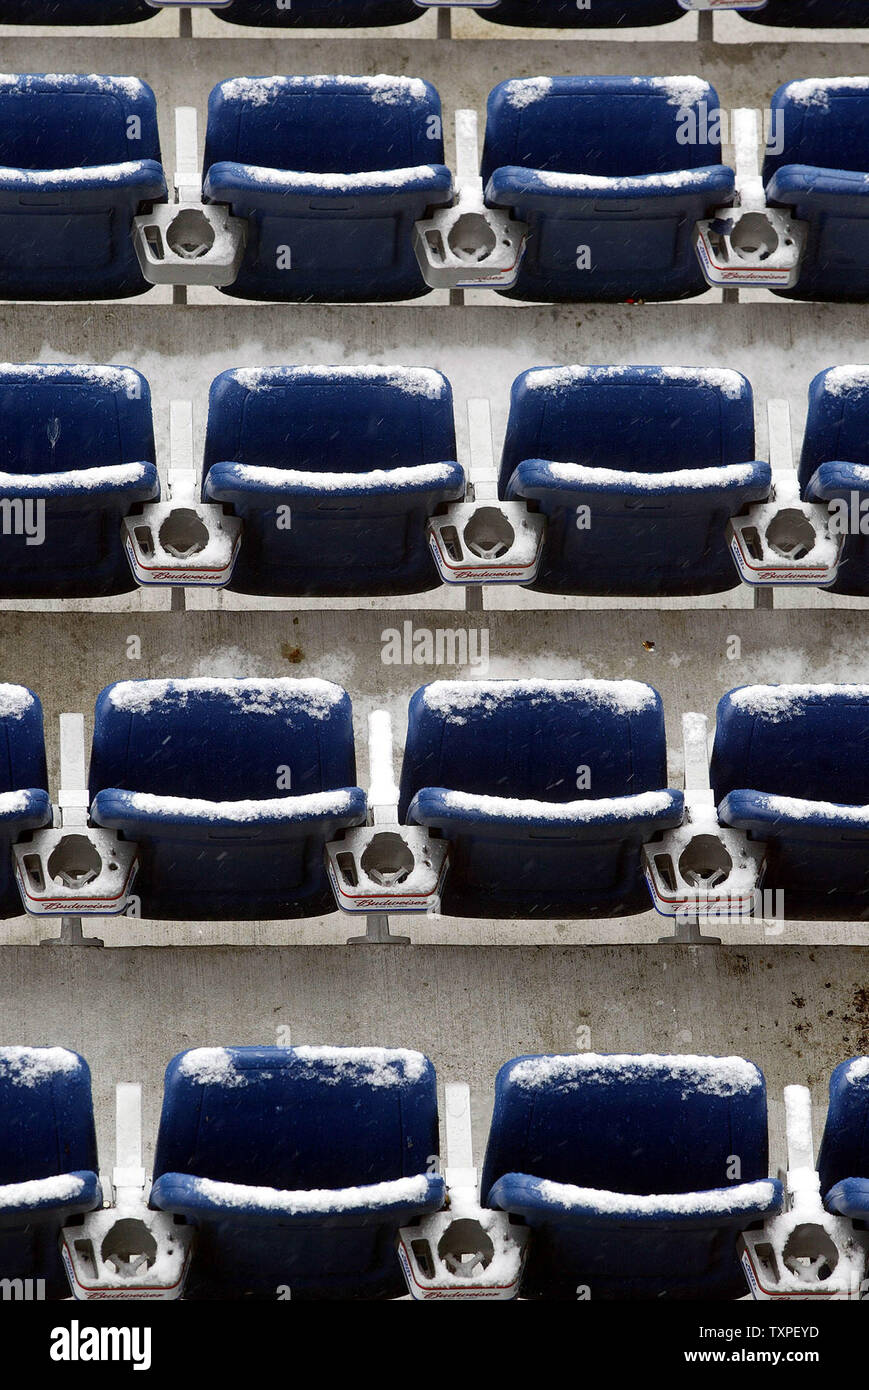 Snow begins to accumulate on the seats in the 200 level section of Gillette Stadium, as snow and light rain fall, before the gates open to let fans into the Stadium for the AFC Championship Game, between the New England Patriots and Indianapolis Colts, Sunday, January 18, 2004, Foxboro, Mass, USA.  (UPI Photo / Steven E. Frischling) - Stock Image